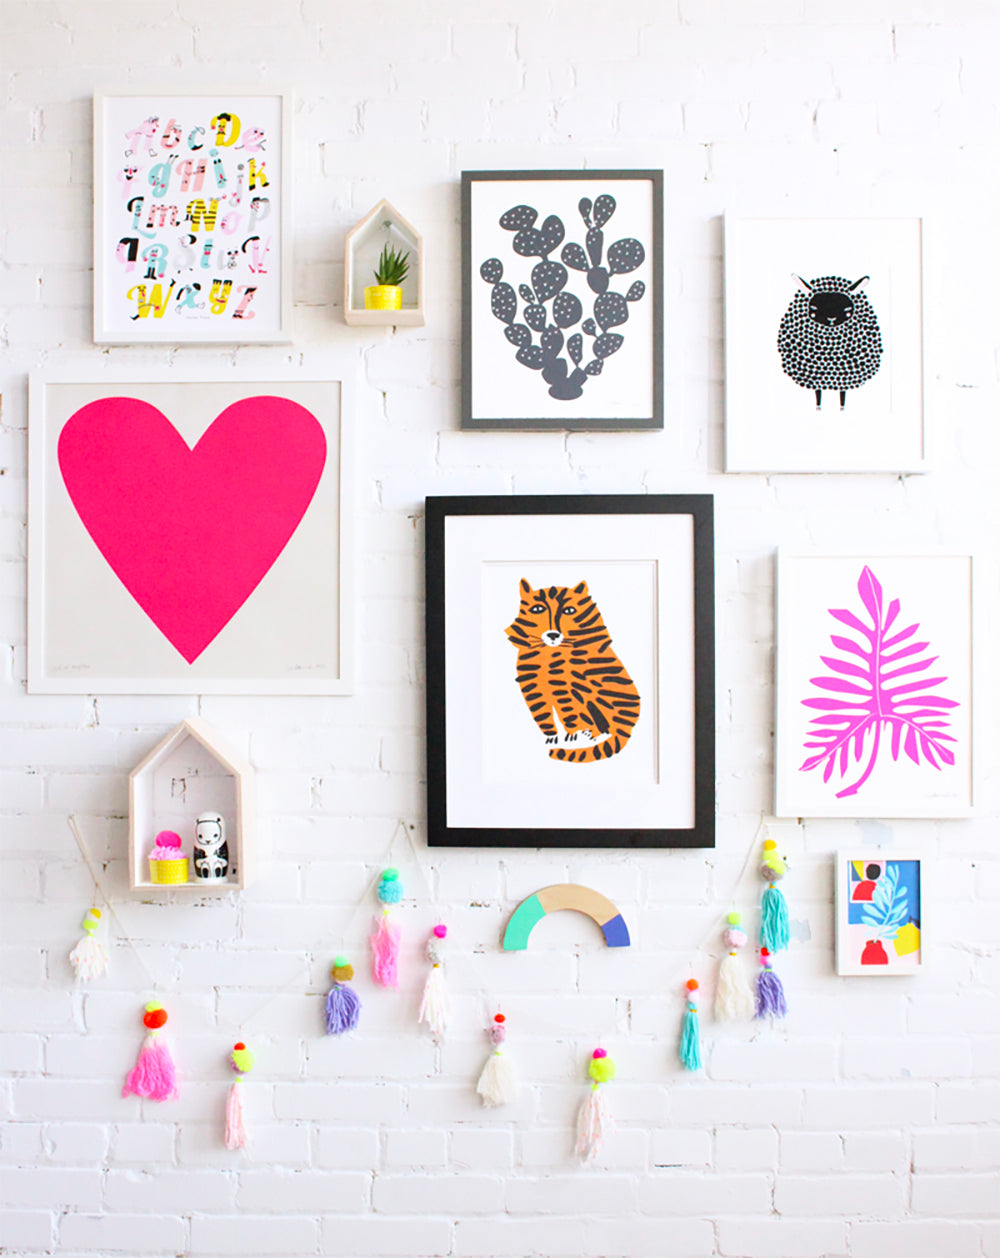 8 ways to display printables in the home kids bedroom, the nursery even the bathroom - Happy Joy Decor